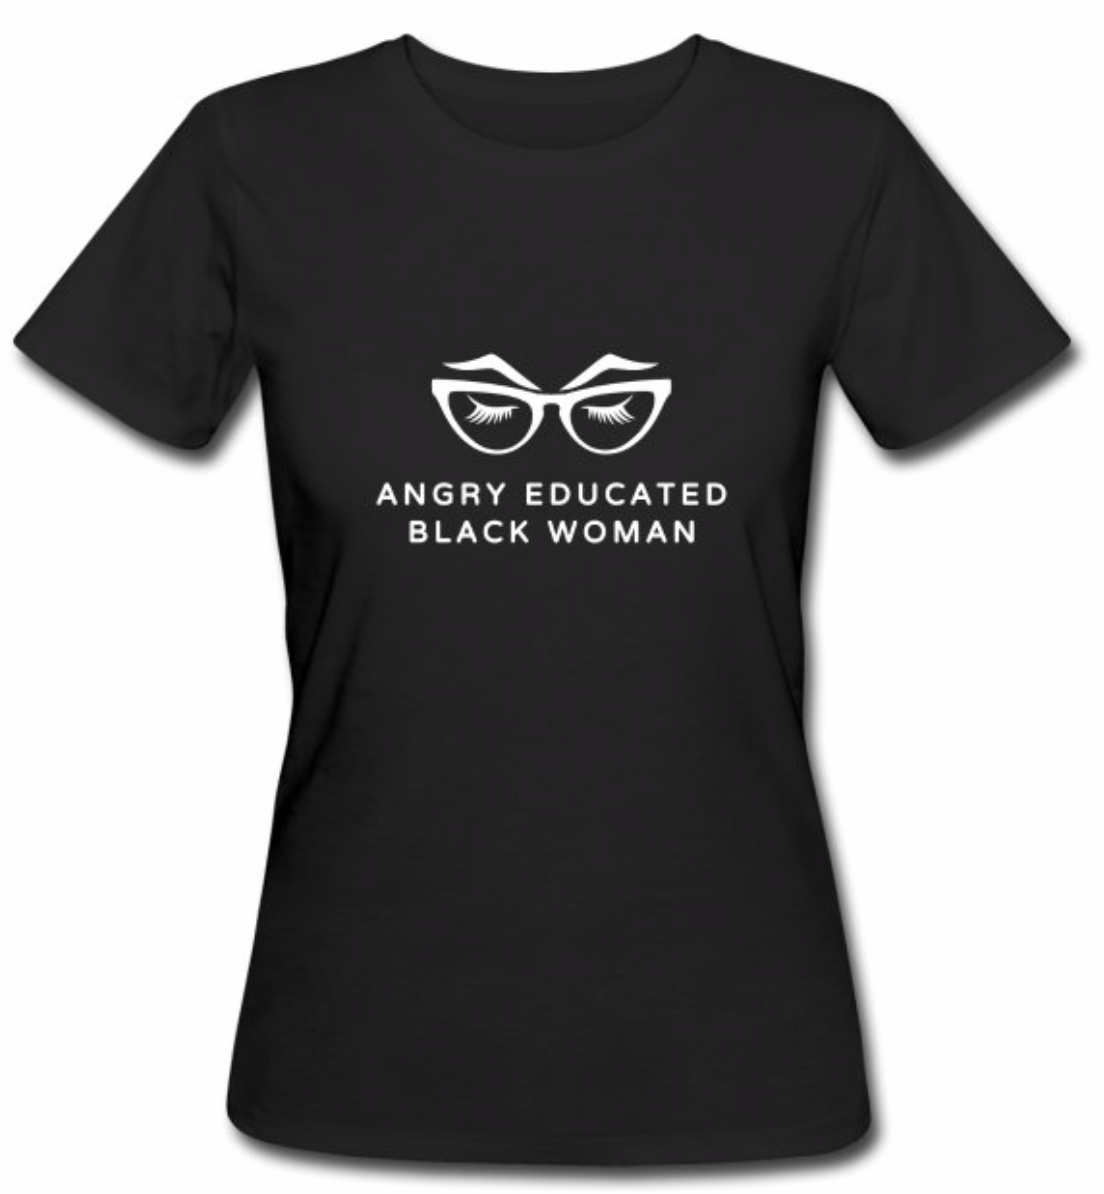 Classic Black Angry Educated Black Woman T-Shirt